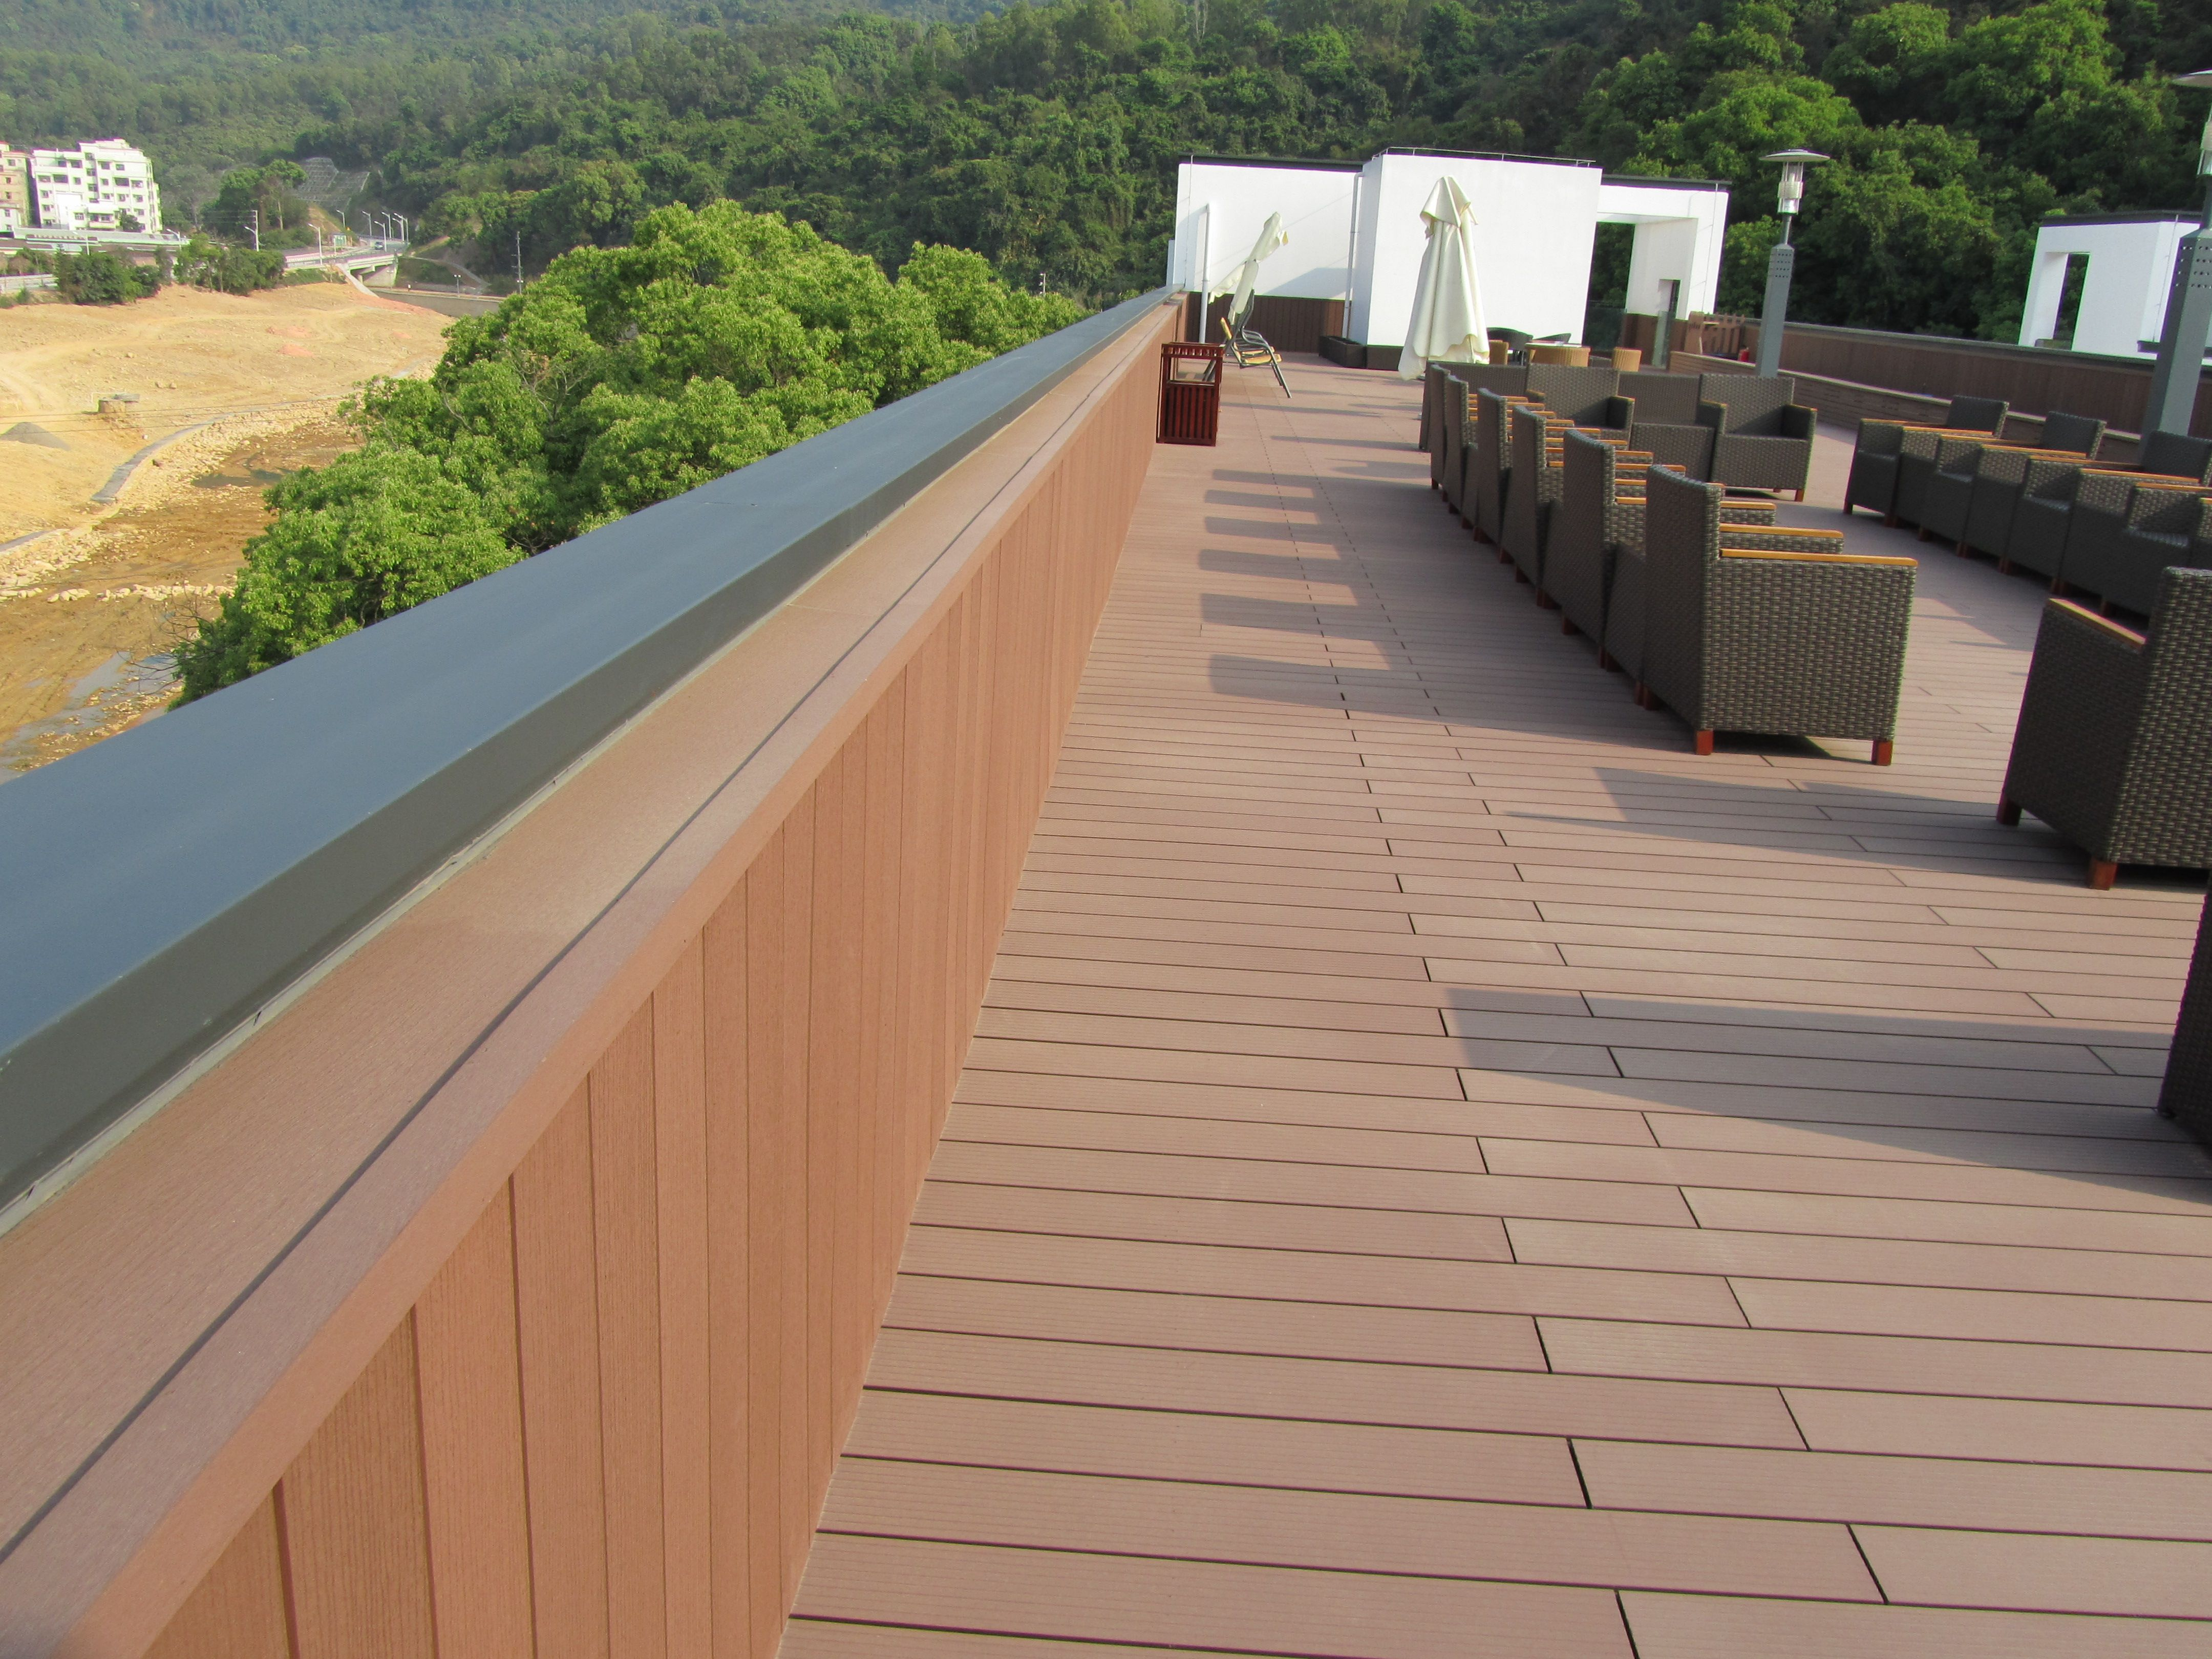 Balcony terrace wood plastic composiet wpc decking for Cheap decking boards uk